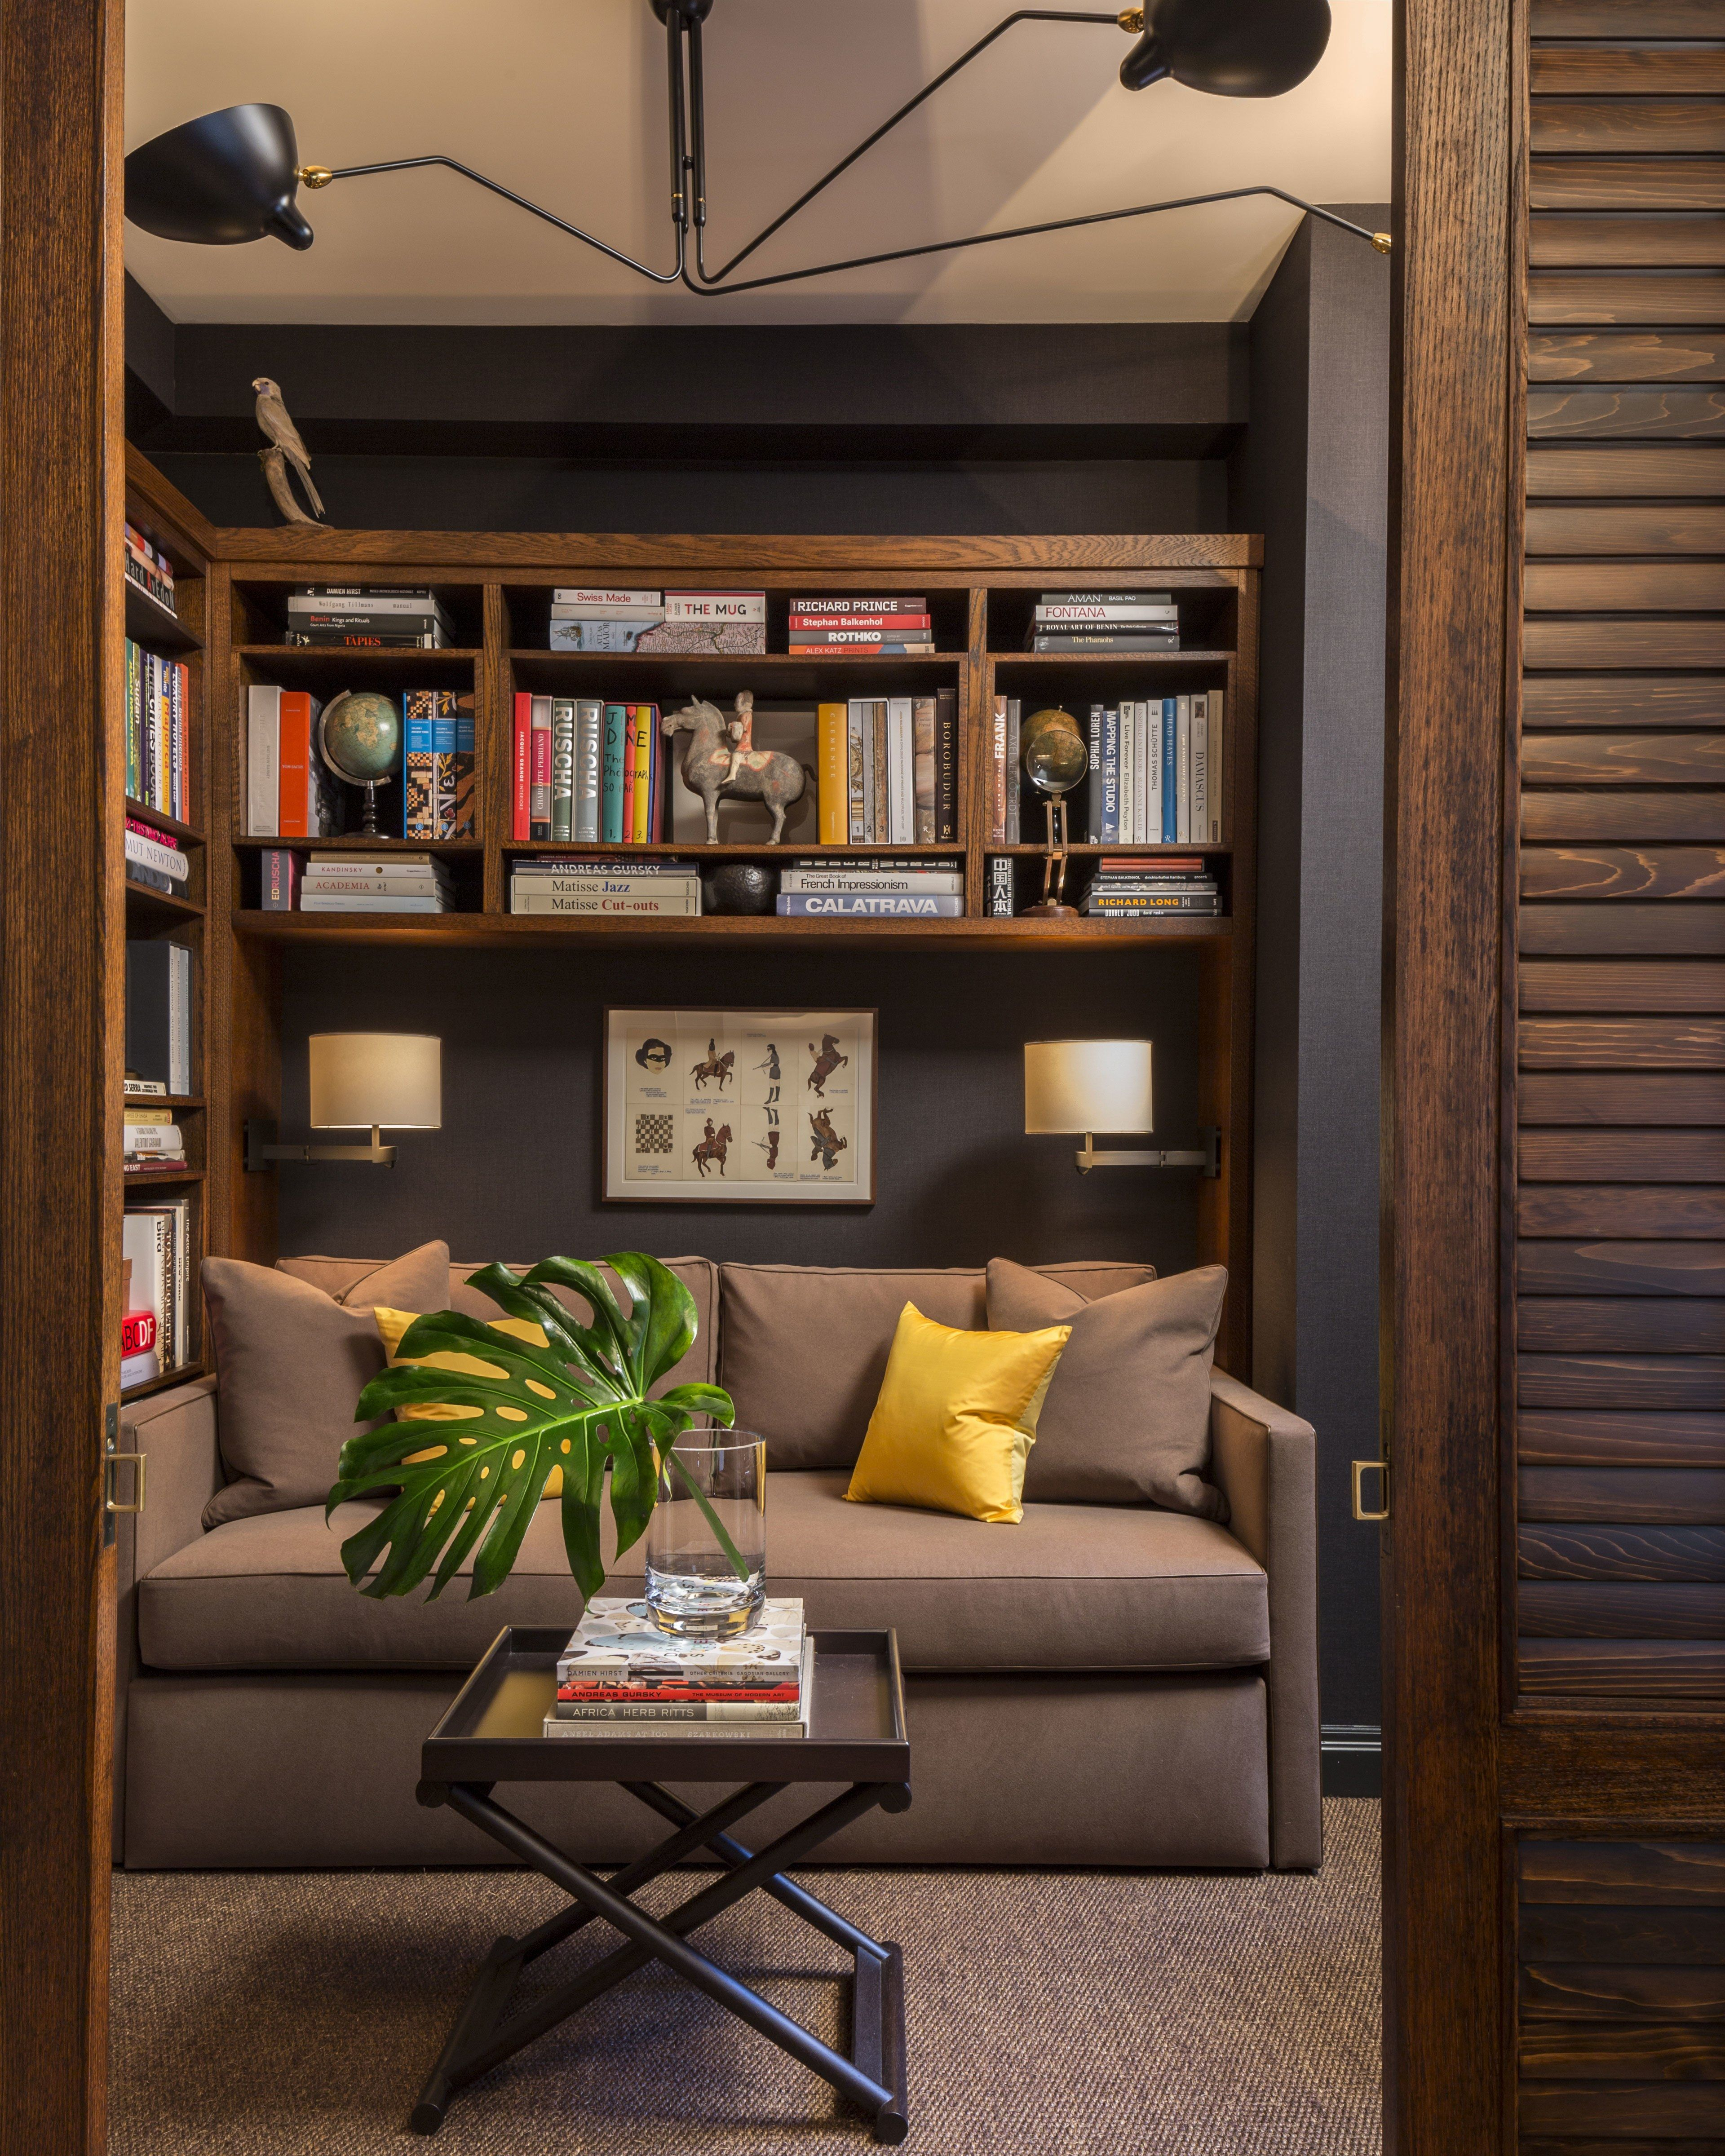 How To Make Room For An Office In A Small Space Cozy Home Office